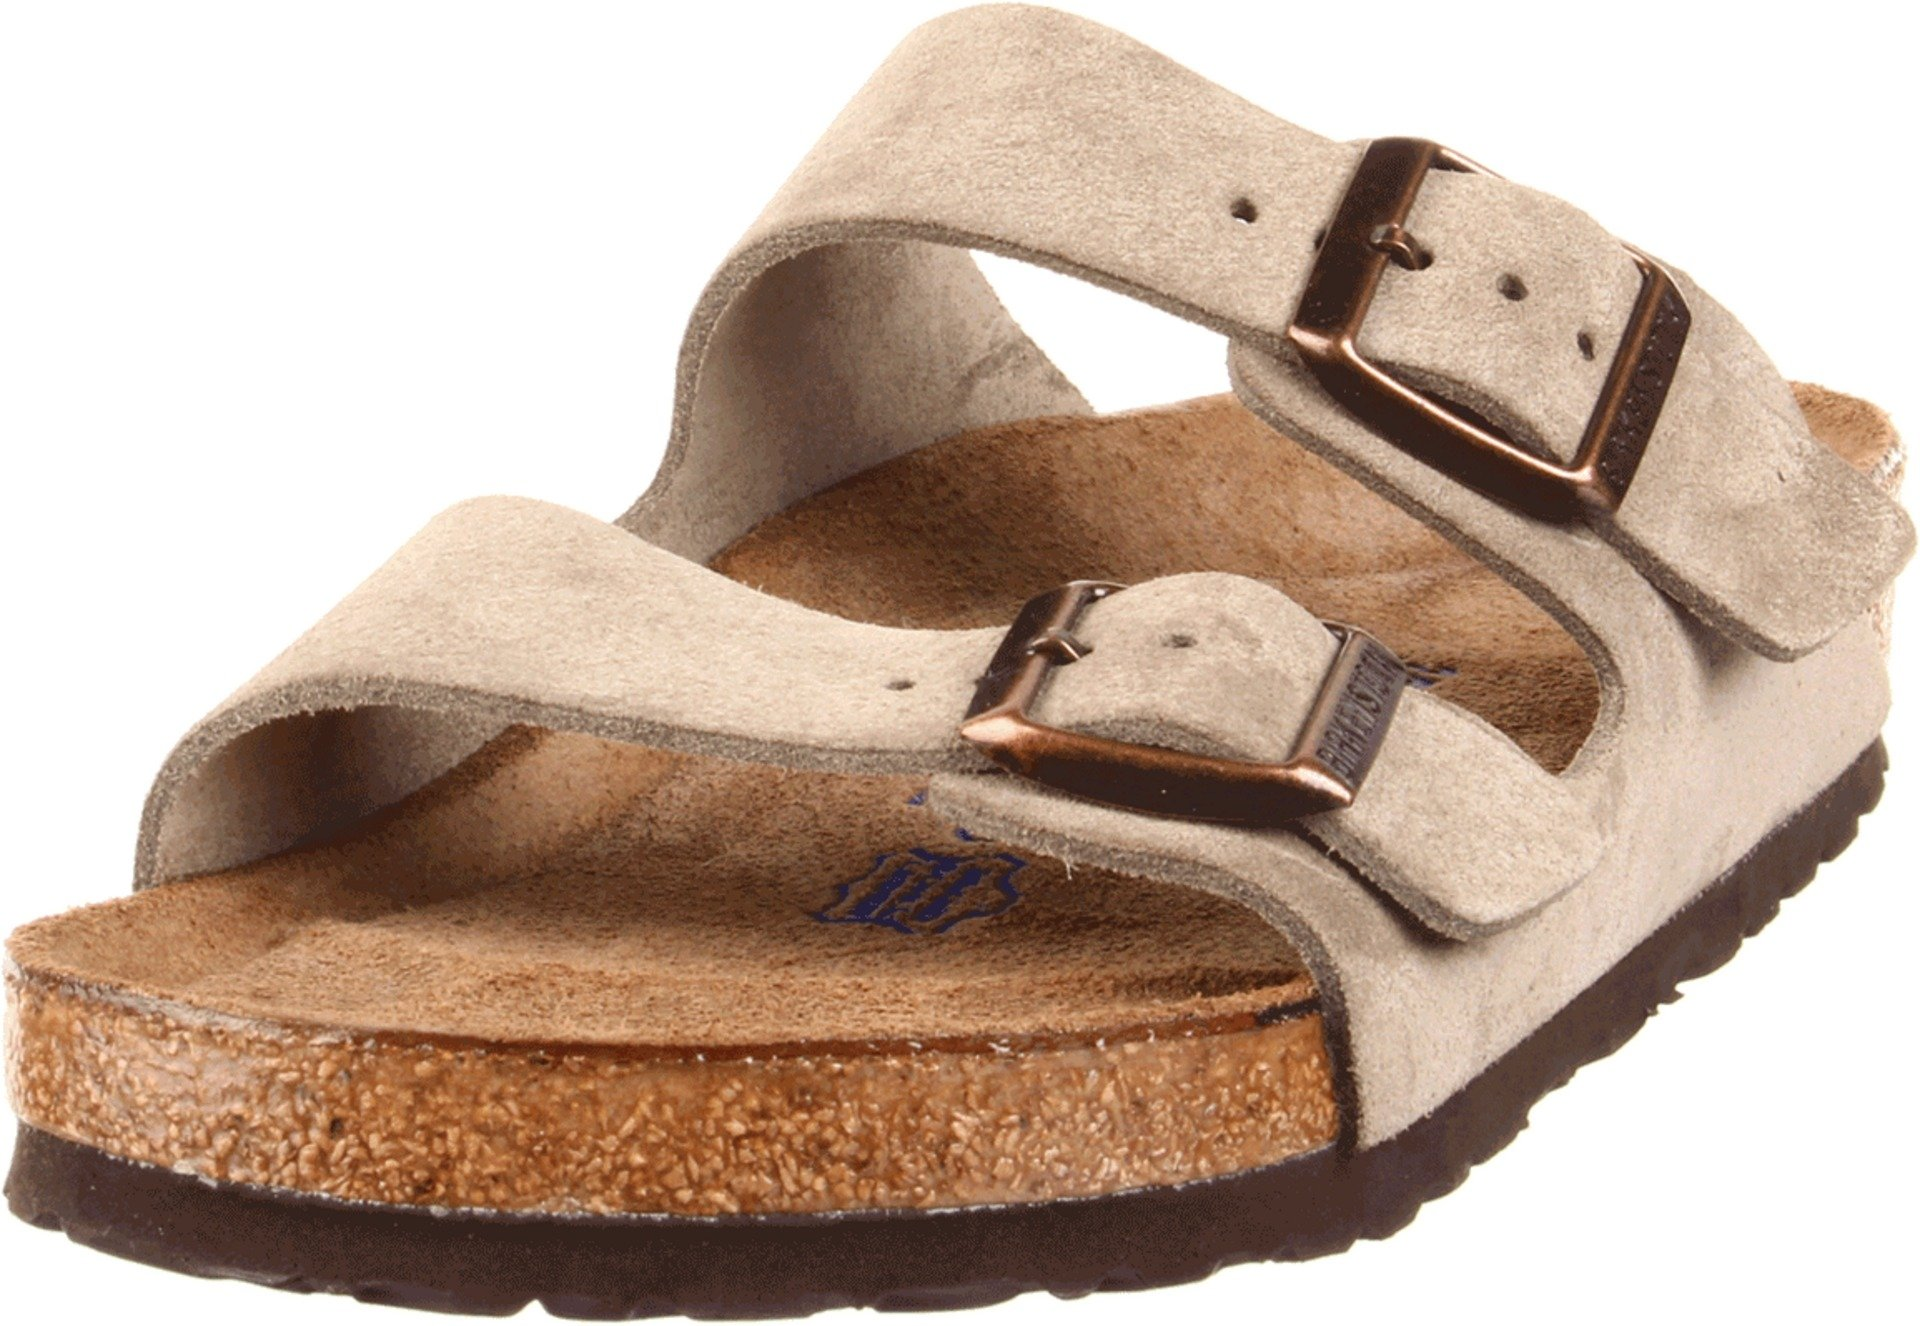 Birkenstock Unisex Arizona Taupe Suede Soft Foot Bed Sandals - 38 M EU / 7-7.5 B(M) US